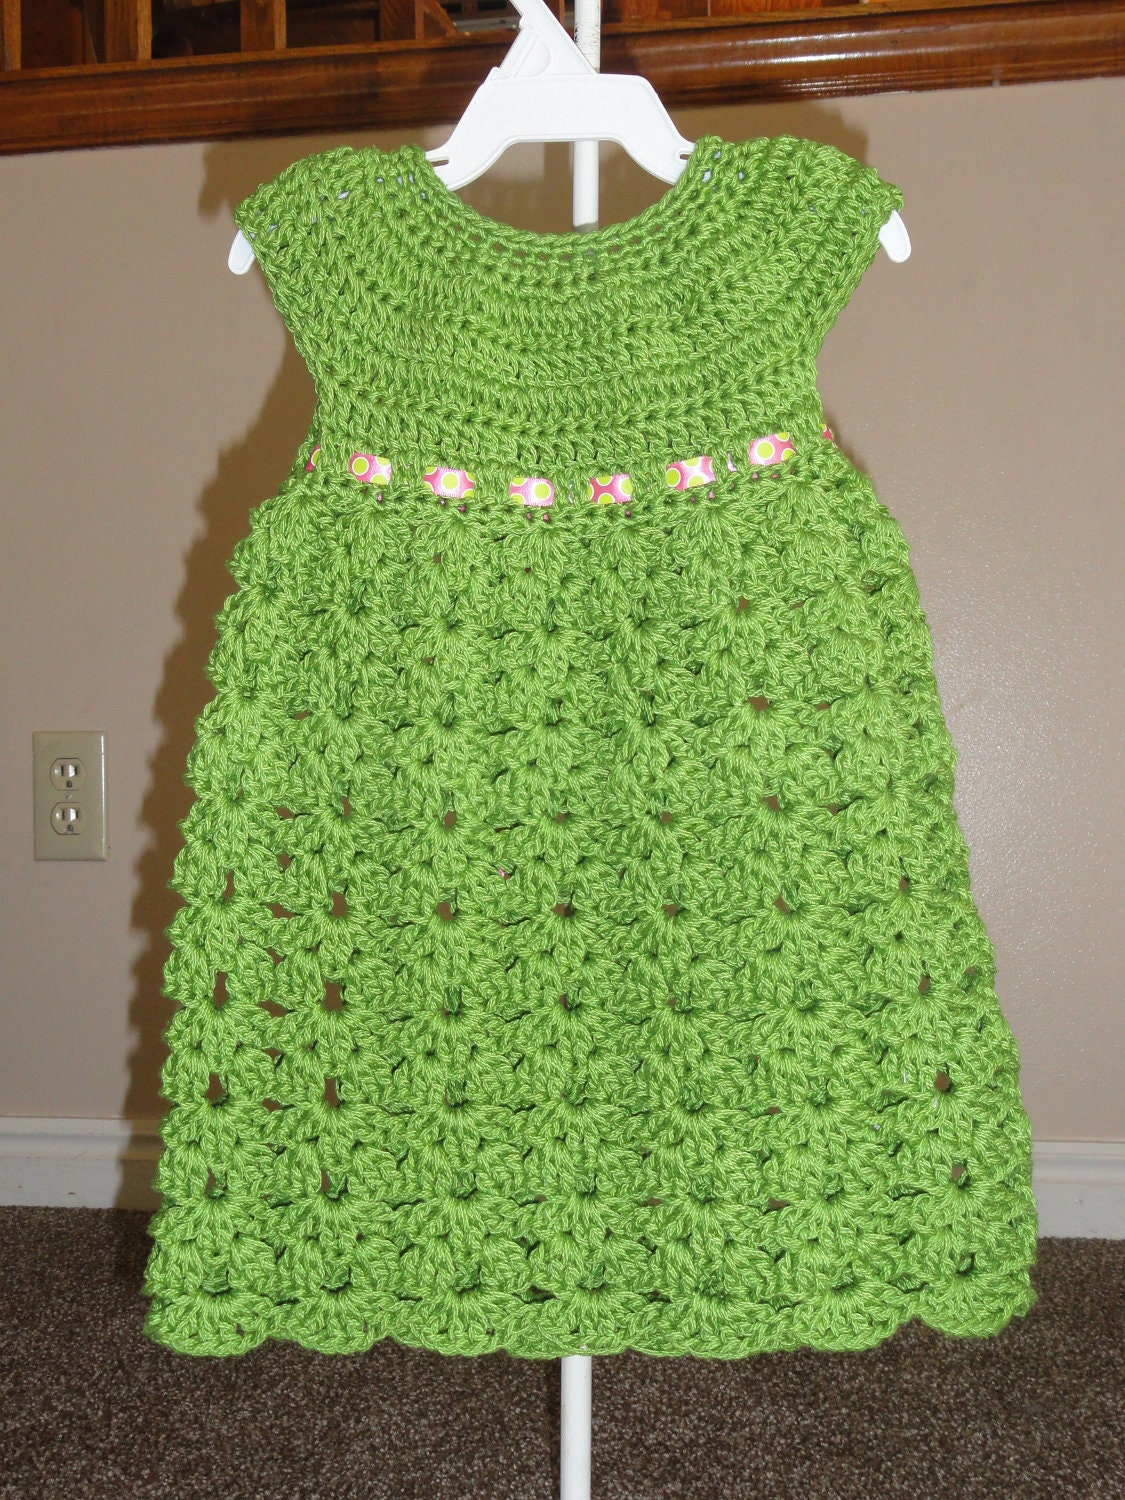 Baby Dress Crochet Pattern Victorian : Fun and Easy Kaylen Dress Crochet Pattern Sizes 12 Months 2T